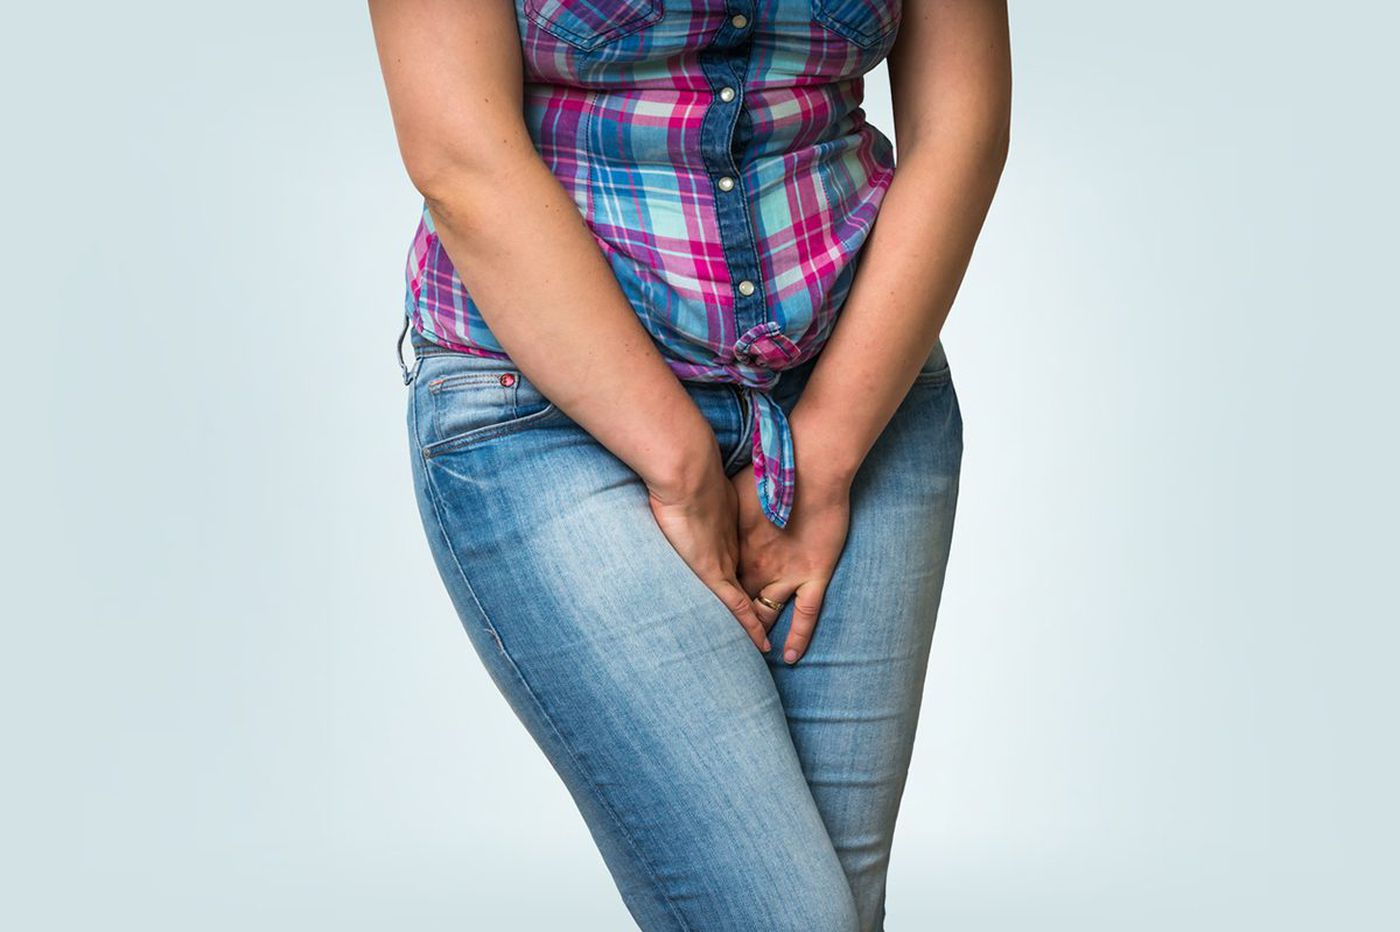 Q&A: Urinary incontinence after menopause